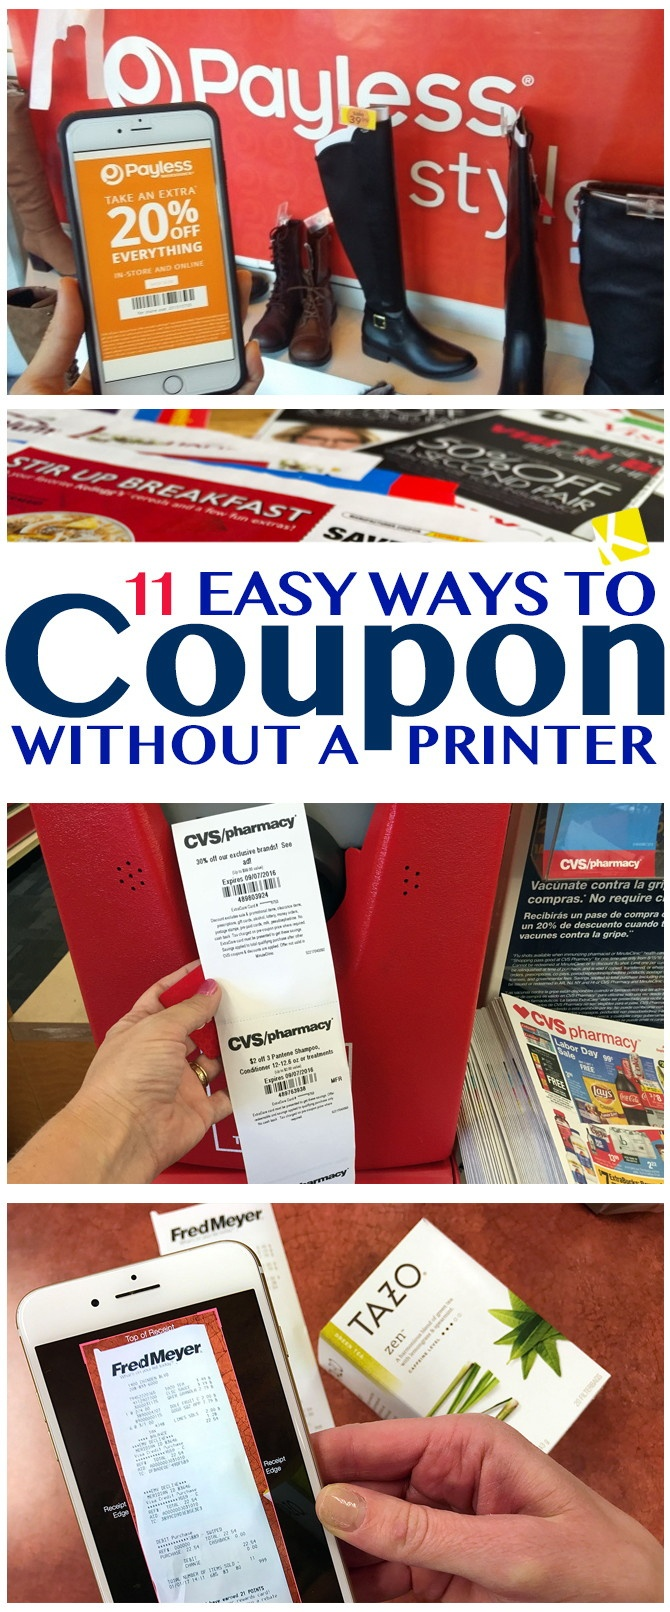 11 Easy Ways To Coupon Without A Printer - The Krazy Coupon Lady - Free Printable Coupons Without Downloading Coupon Printer